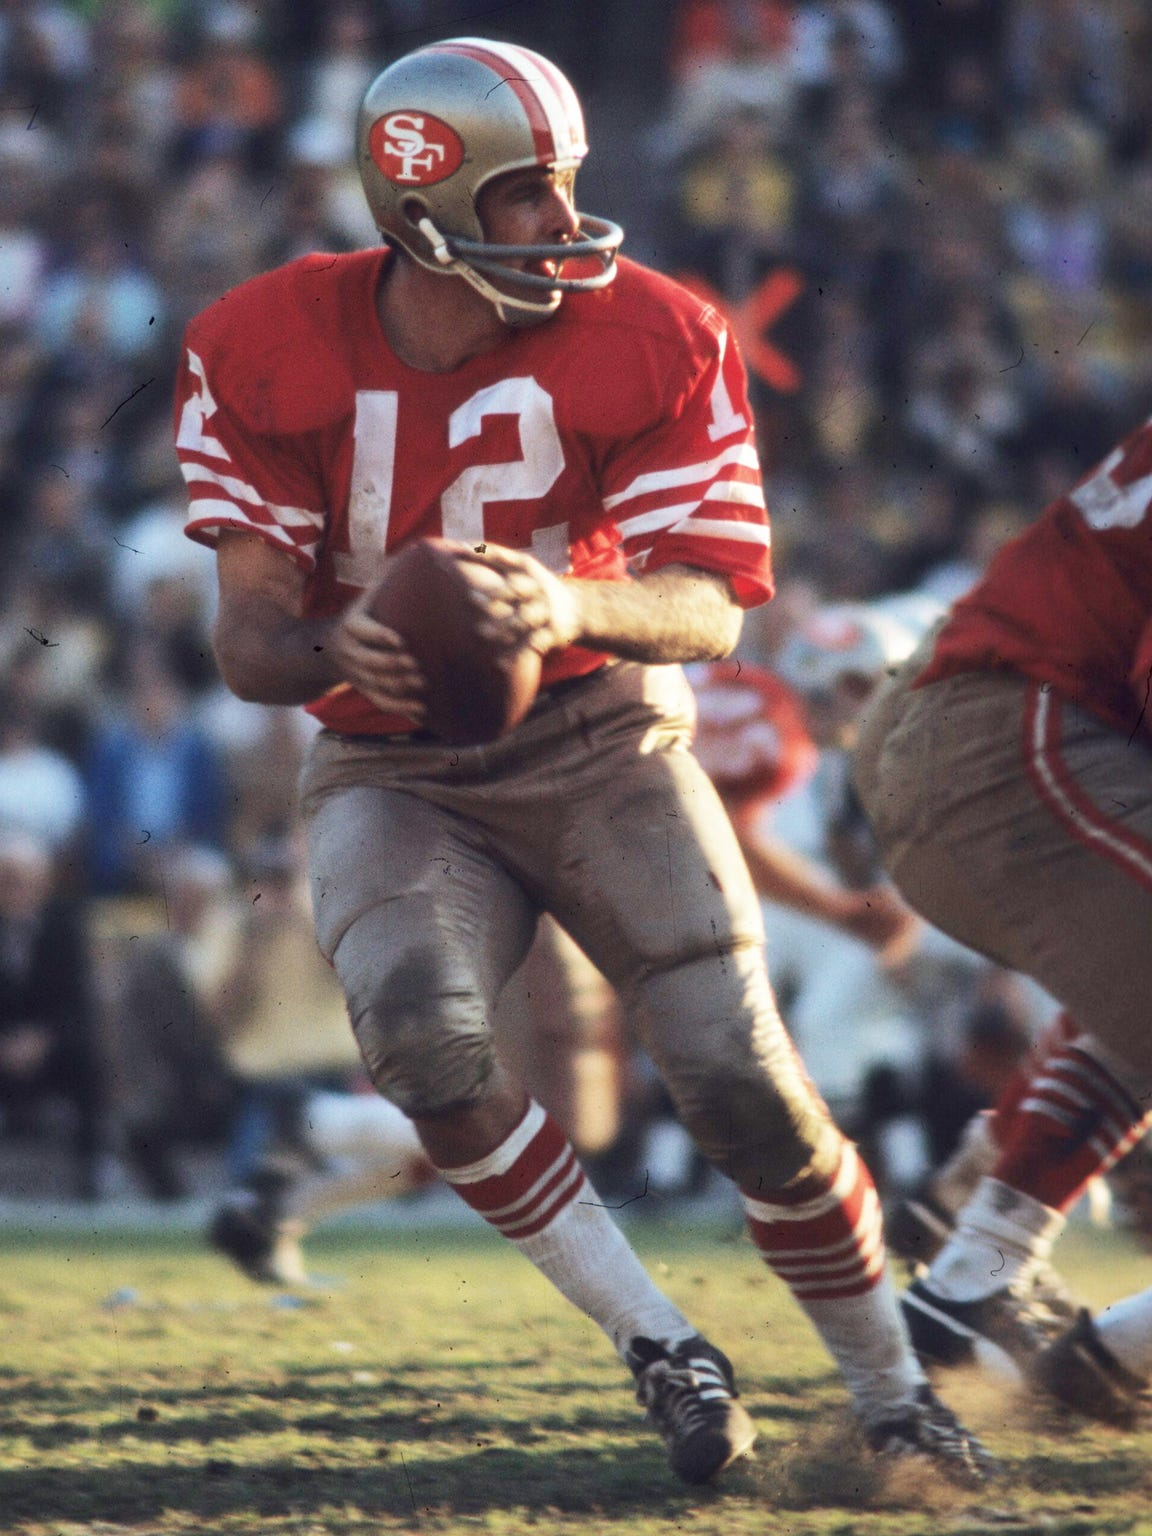 John Brodie played quarterback in the NFL for 17 years and was named the league MVP in 1970 while playing for the San Francisco 49ers